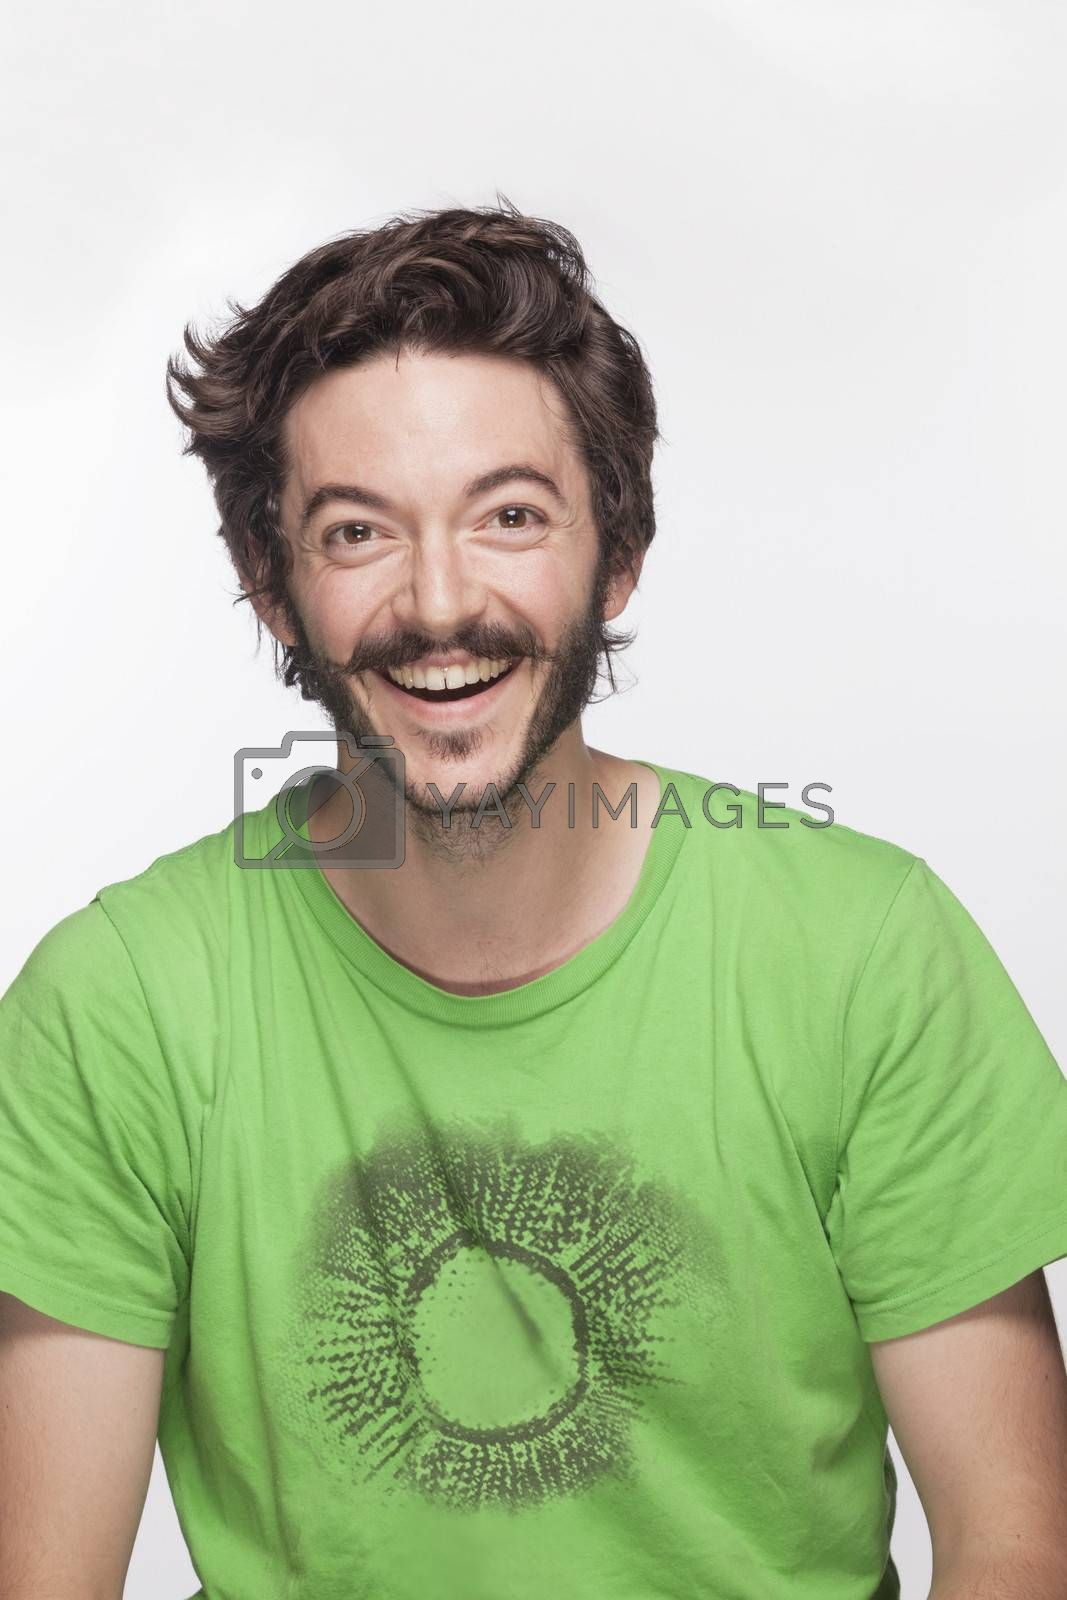 Smiling young man with beard and moustache looking at camera, studio shot